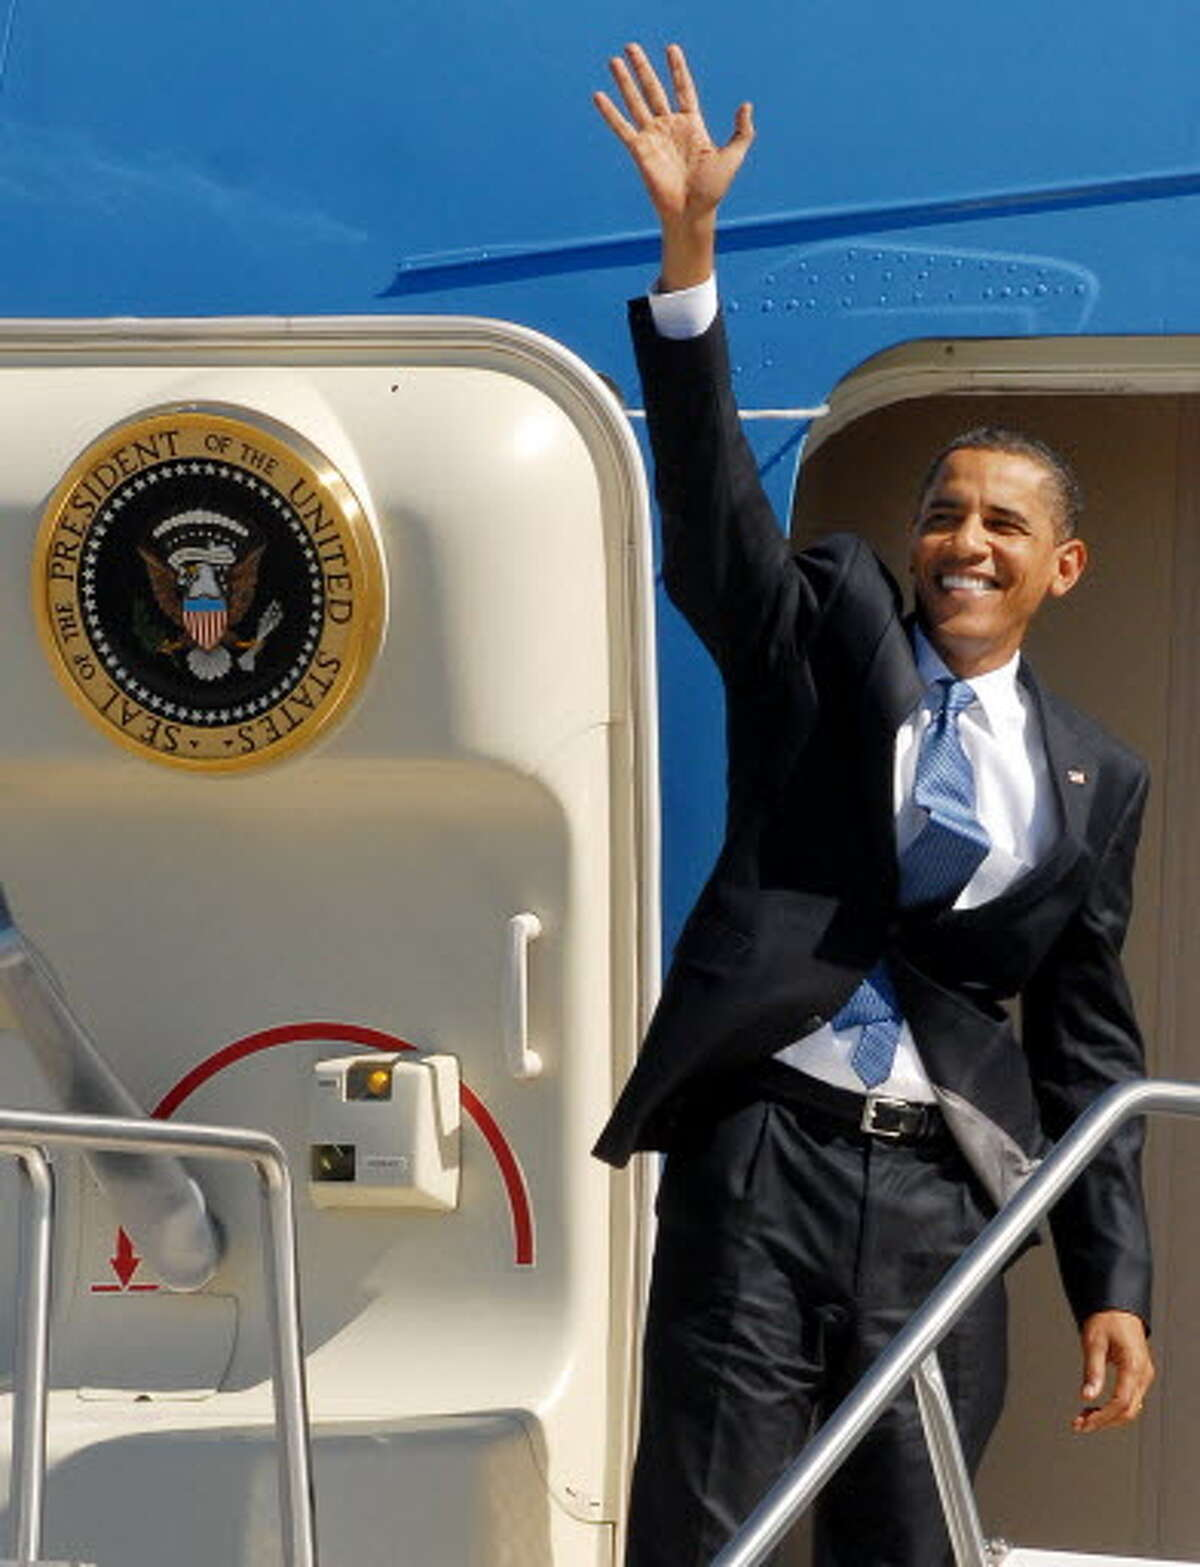 President Barack Obama turns to wave as he returns to Air Force One for departure at the Albany International Airport on Monday, Sept 21, 2009, after his tour and speech at Hudson Valley Community College. (Luanne M. Ferris / Times Union)